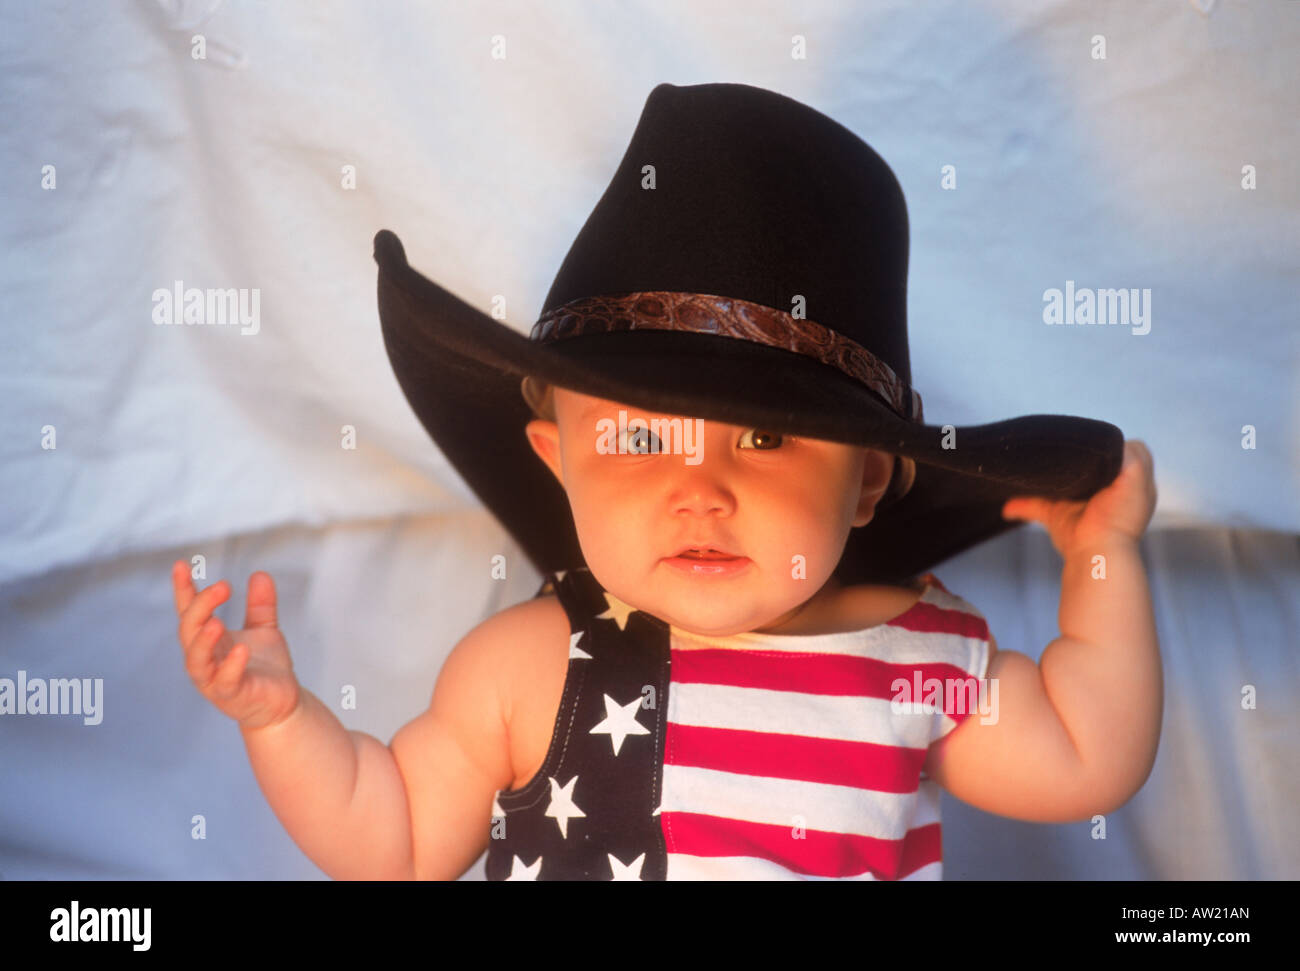 Baby 7-12 month with big cowboy hat and USA costume Stock Photo ... 6d7e9e0b3f8